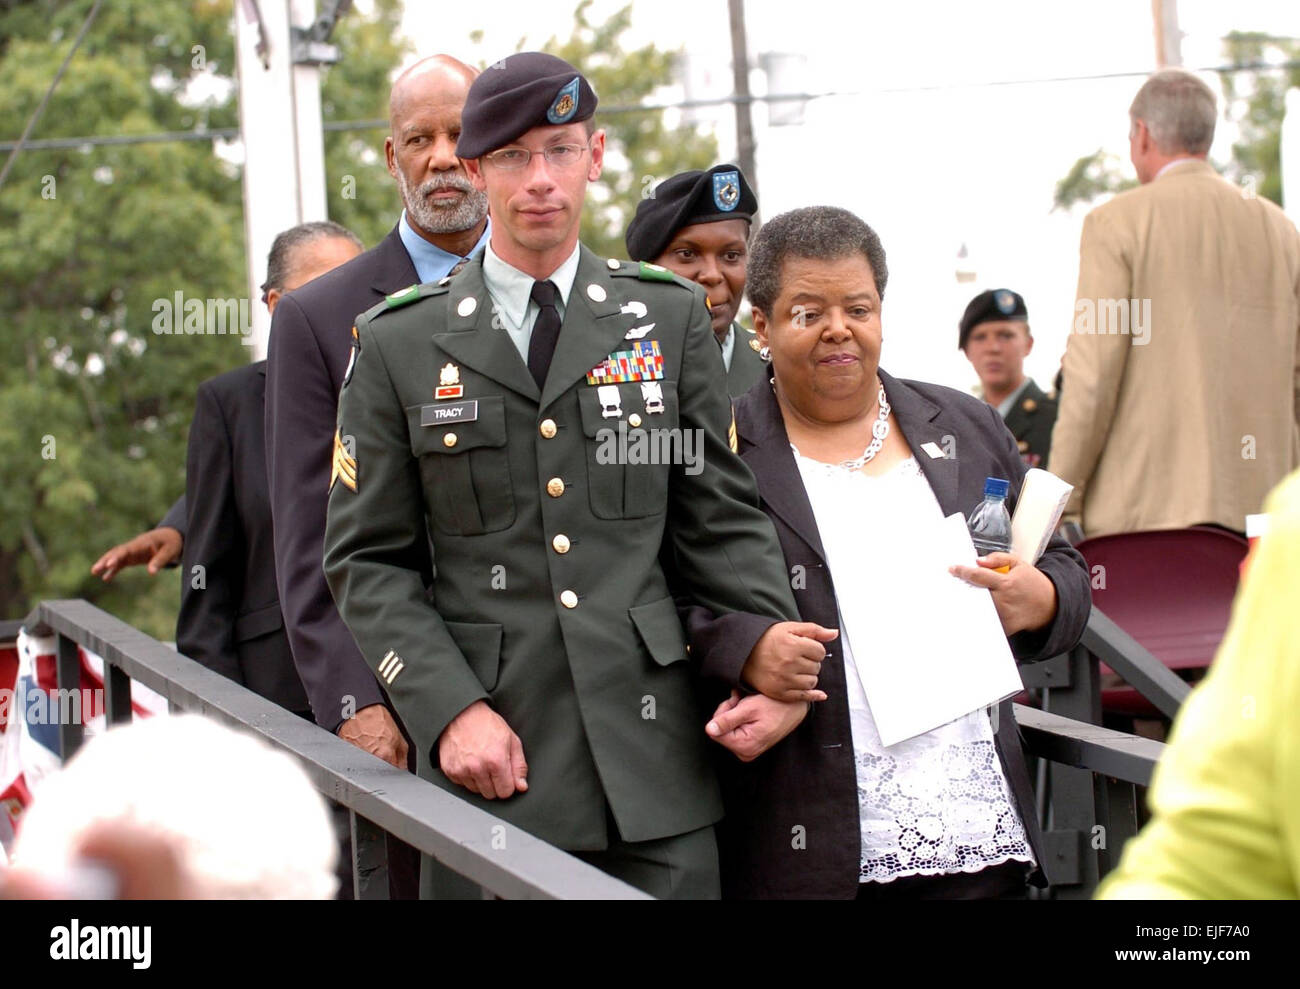 101st Soldier escorts Little Rock Nine member Sgt. 1st Class N. Maxfield  Sgt. Michael Tracy, from the 101st Airborne Division Air Assault escorts  Little ...